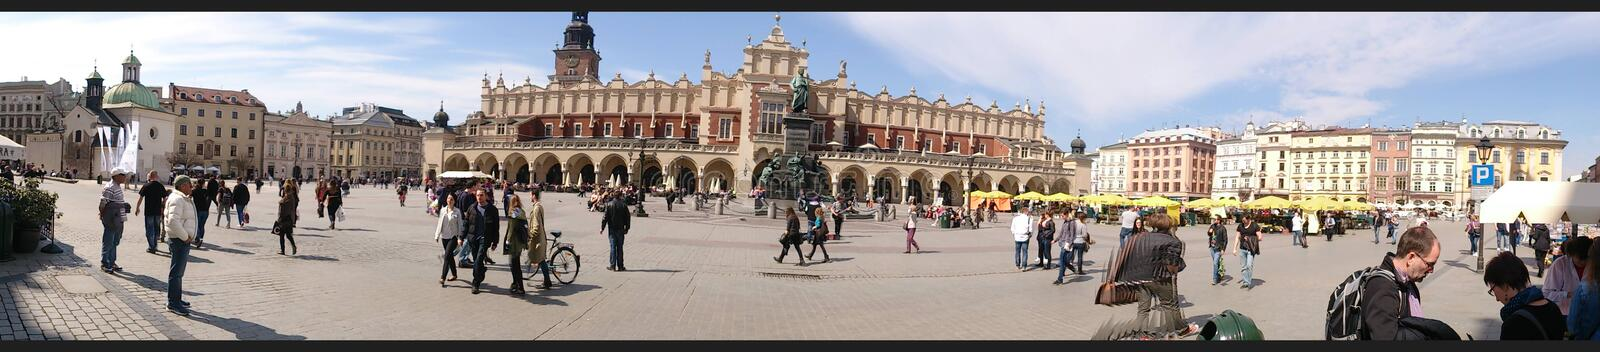 The main Market Square in Krakow royalty free stock photography